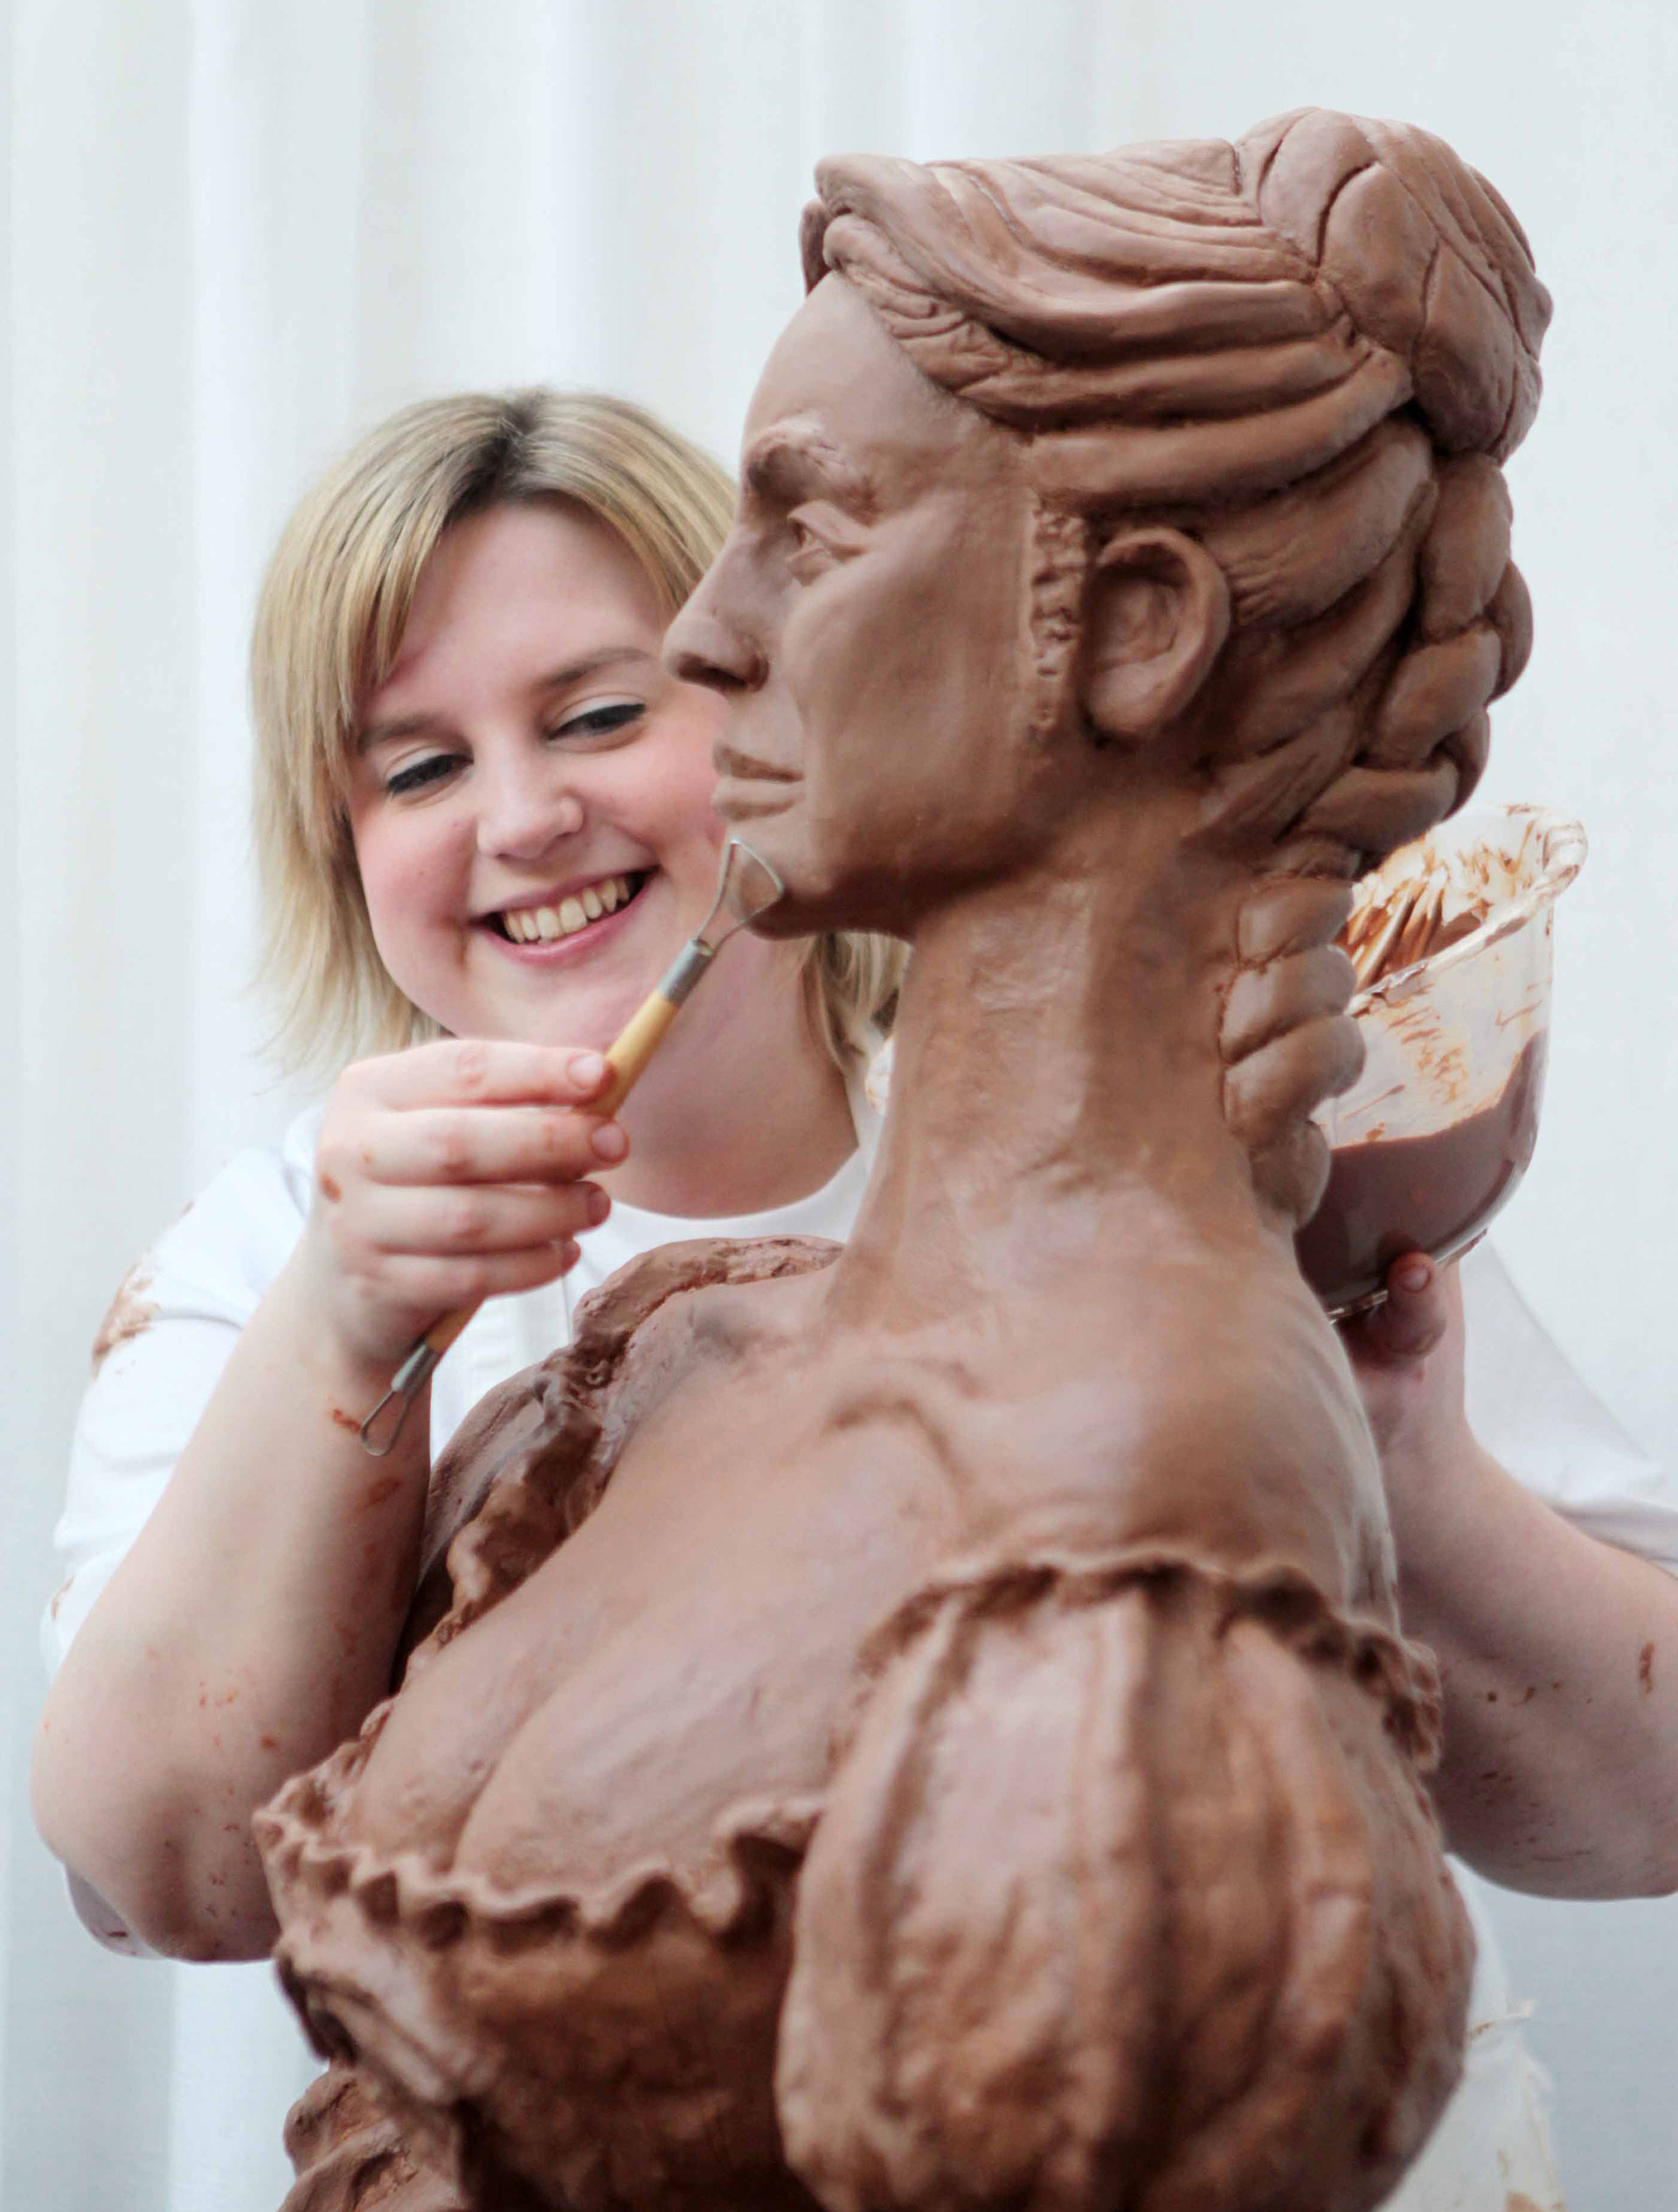 Prudence live sculpting Molly Malone from Cadbury chocolate